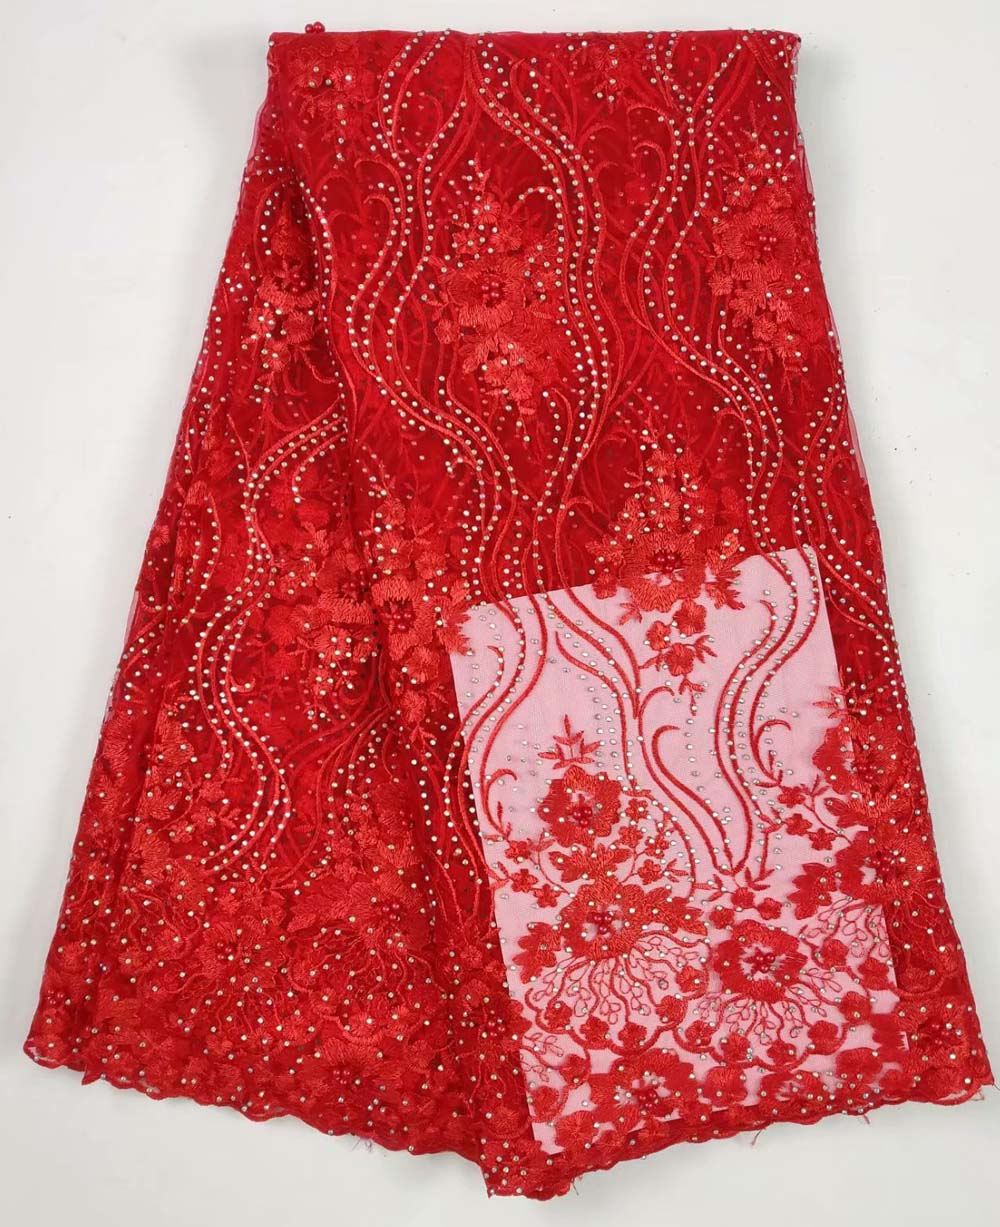 French Bead Lace Fabric red 2018 Latest African Mesh Tulle Lace Fabric 5Y Nigerian Guipure Lace Fabric High Quality